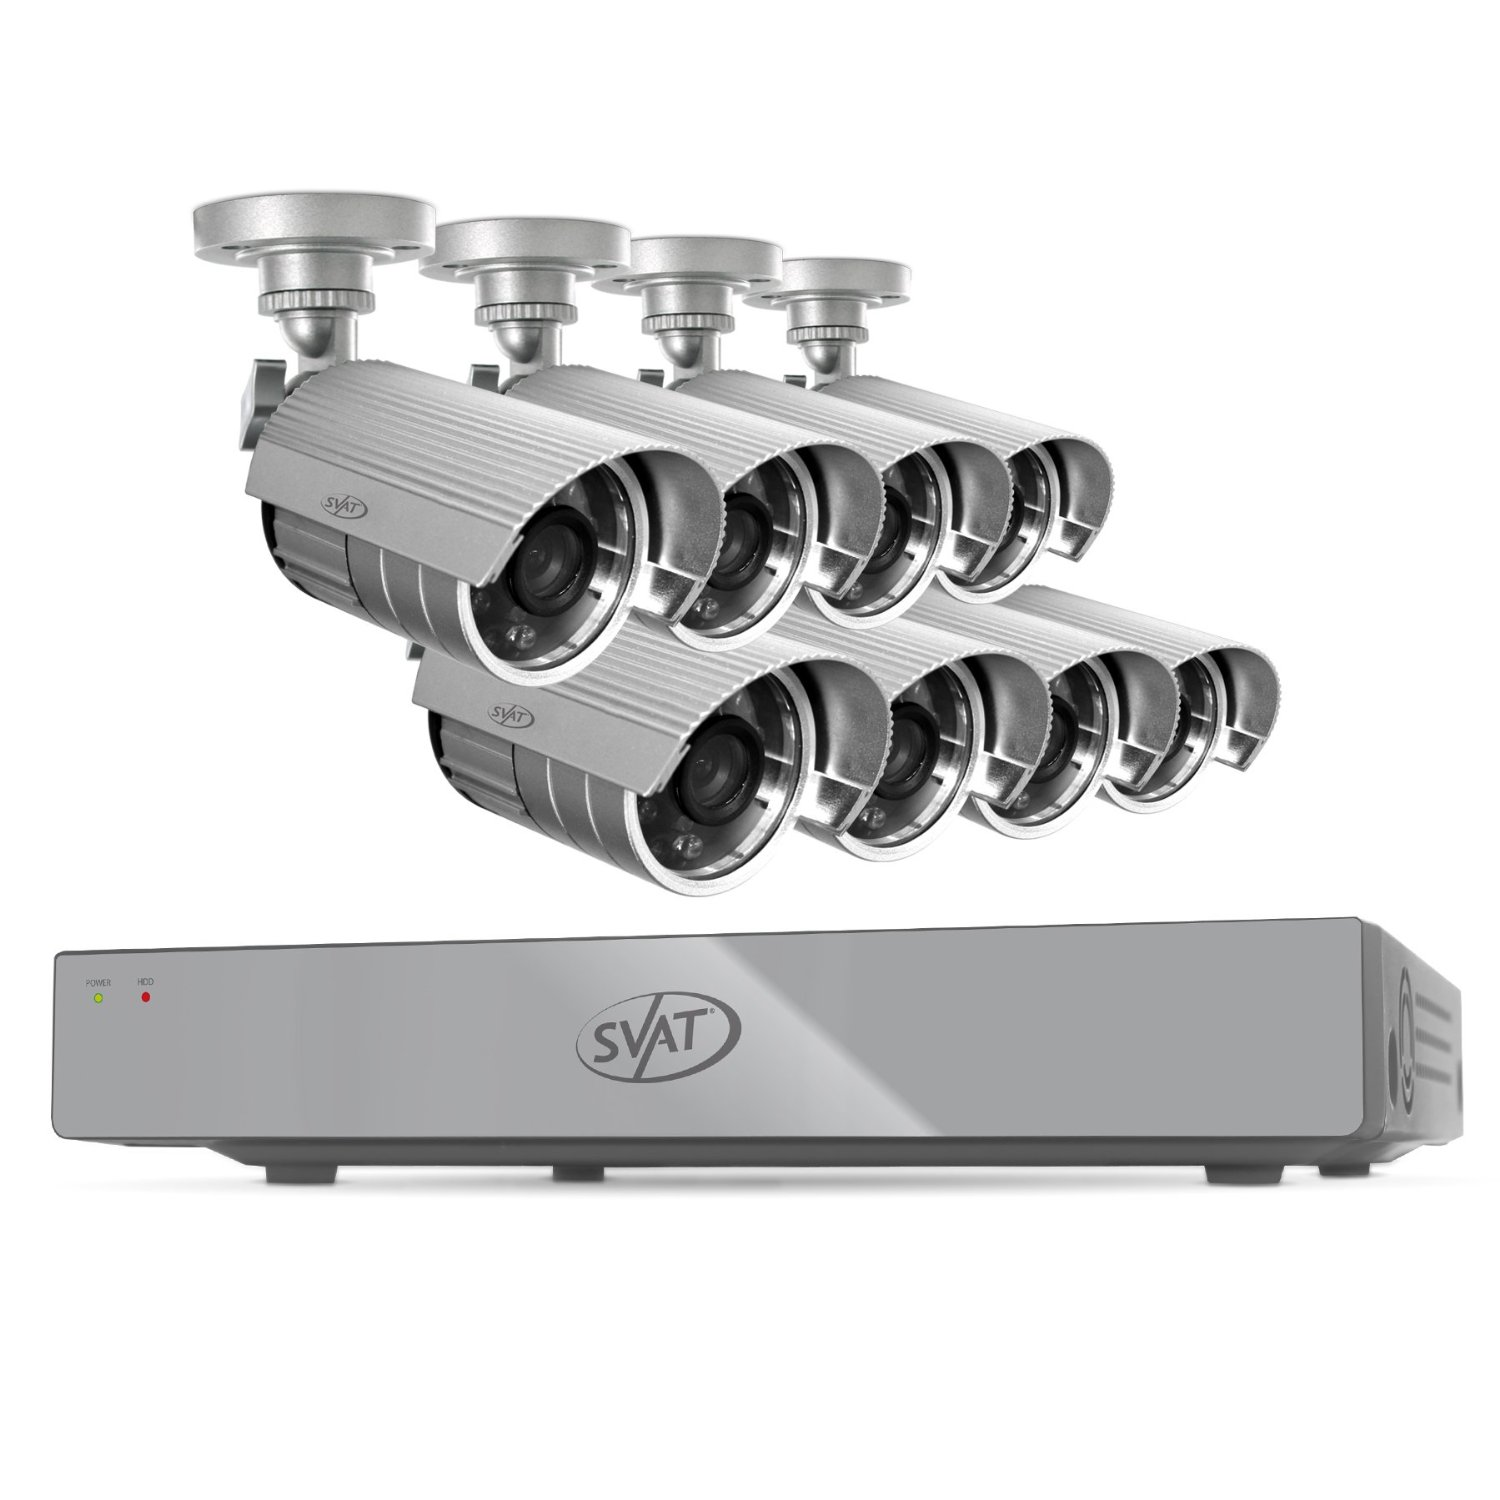 SVAT Outdoor Security Systems